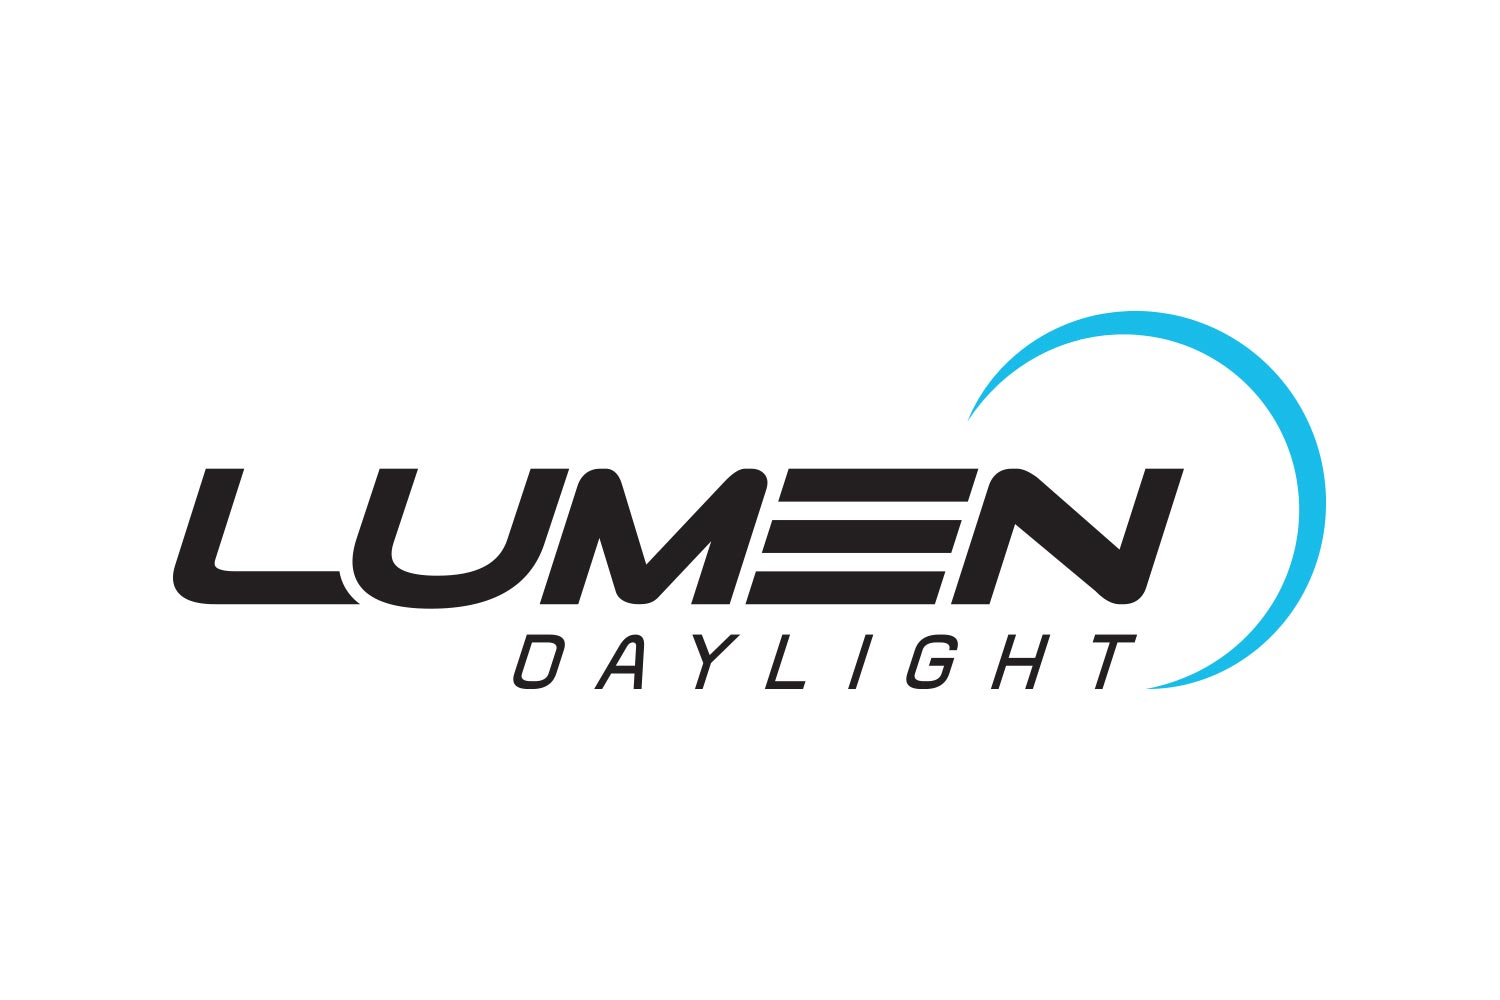 Lumen Workforce D20 LED arbetsbelysning